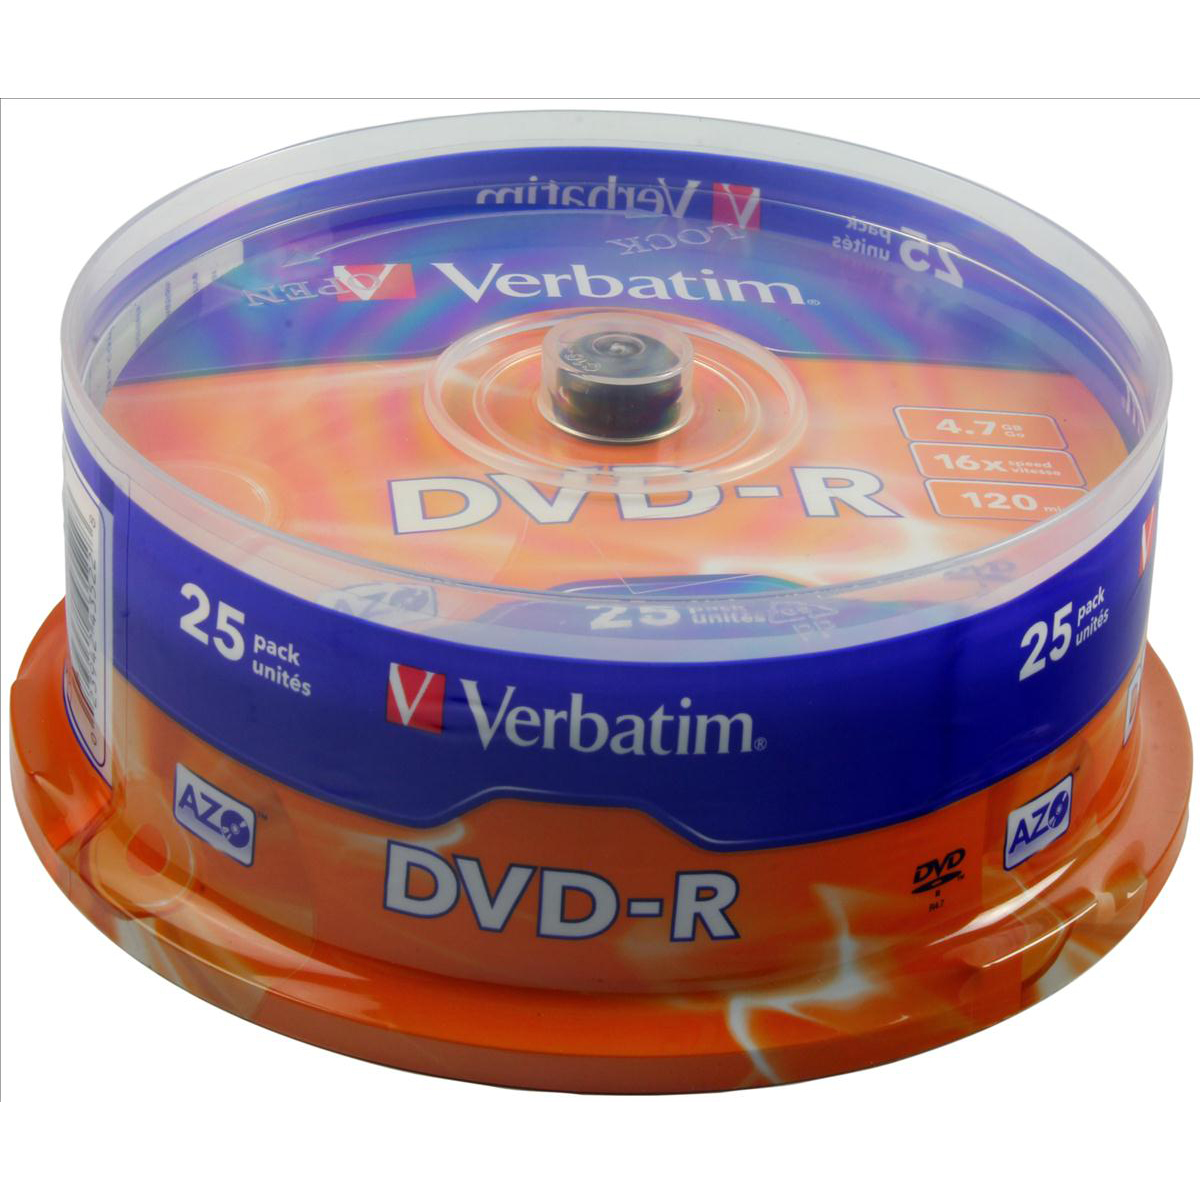 Digital versatile disks DVDs Verbatim DVD-R Spindle Ref 43522-1 Pack 25